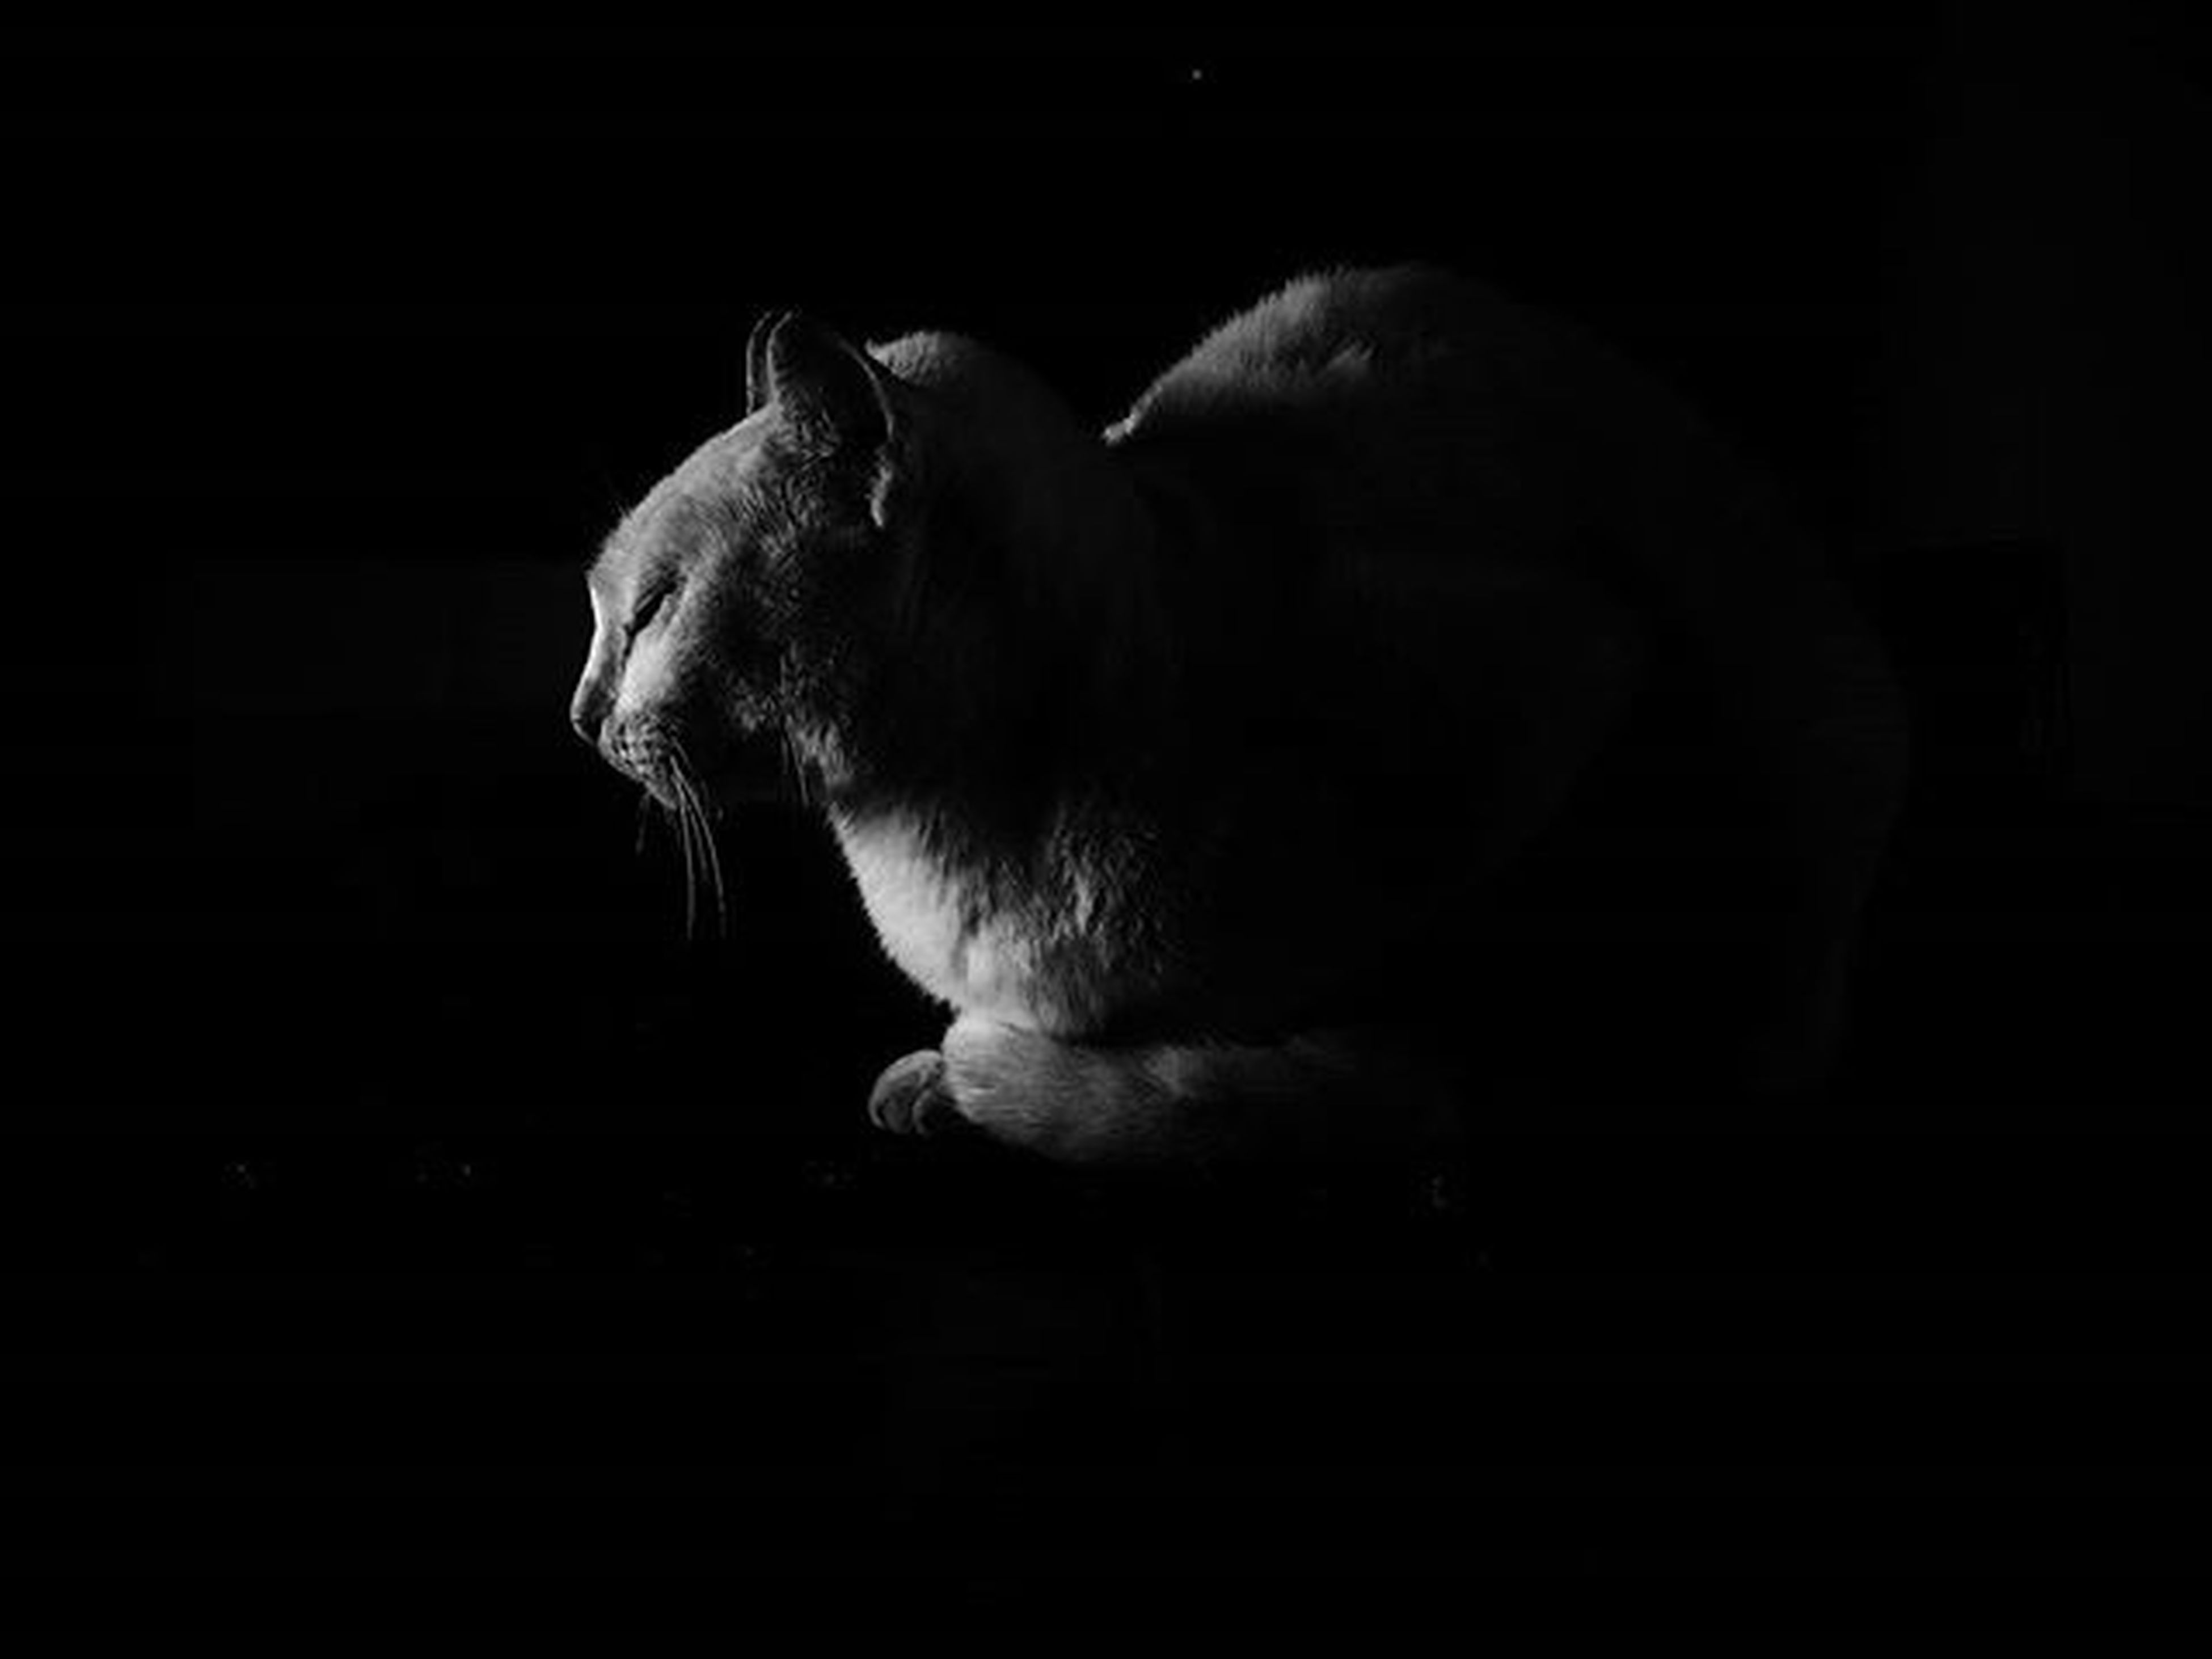 animal themes, one animal, side view, mammal, domestic animals, wildlife, indoors, night, full length, animals in the wild, black background, dark, close-up, pets, two animals, zoology, rear view, one person, studio shot, togetherness